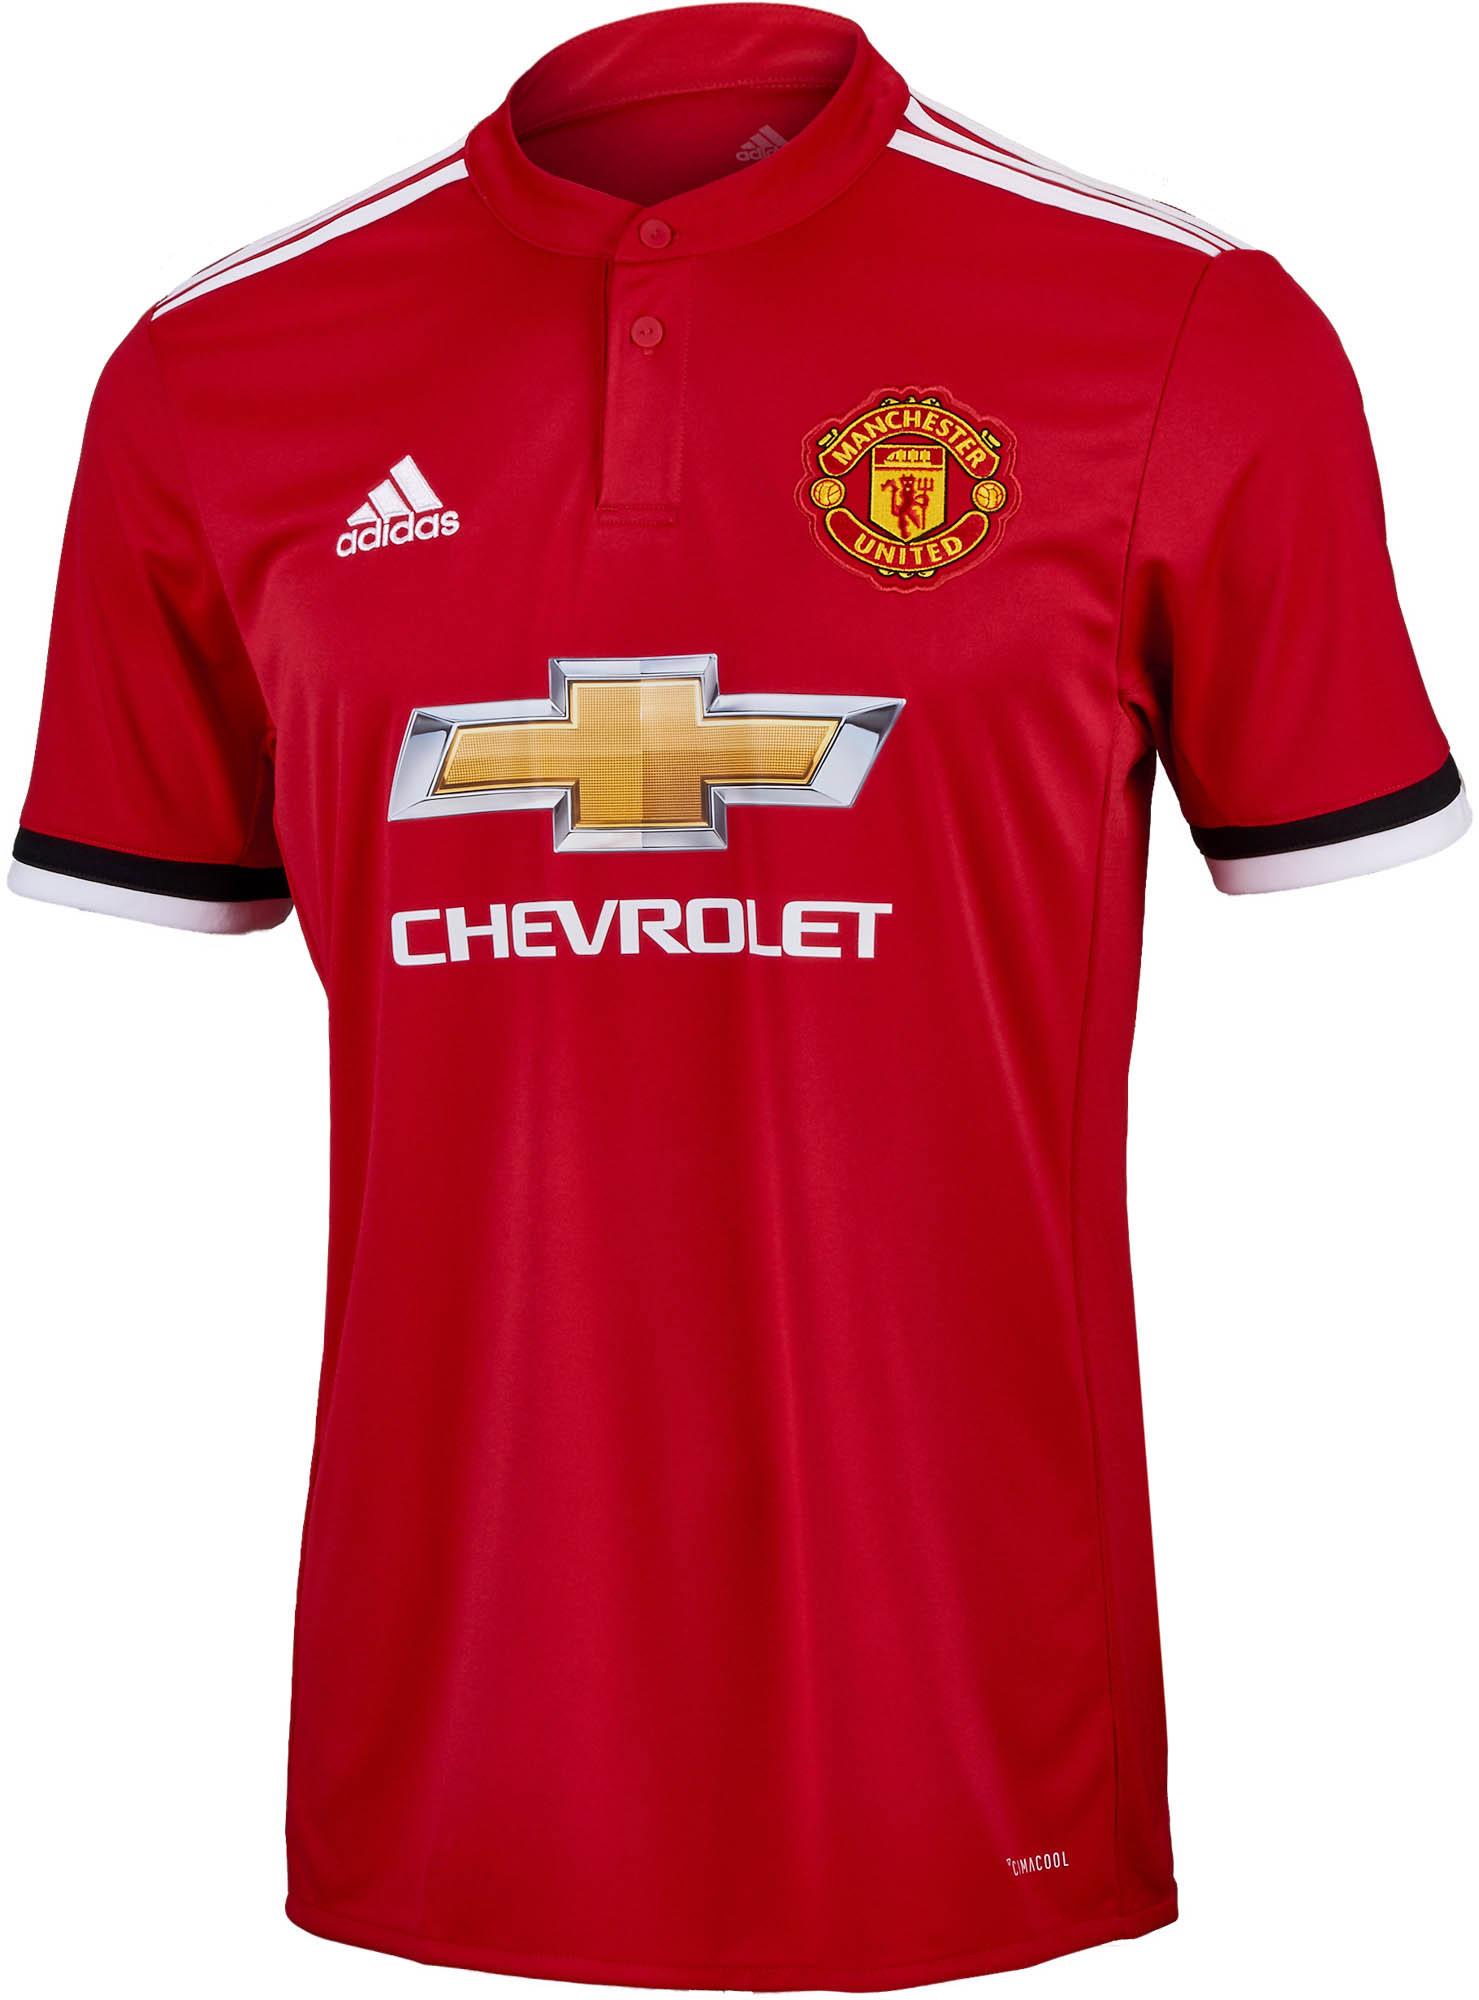 adidas Manchester United Jersey - 17/18 Man Utd Jerseys - photo#33